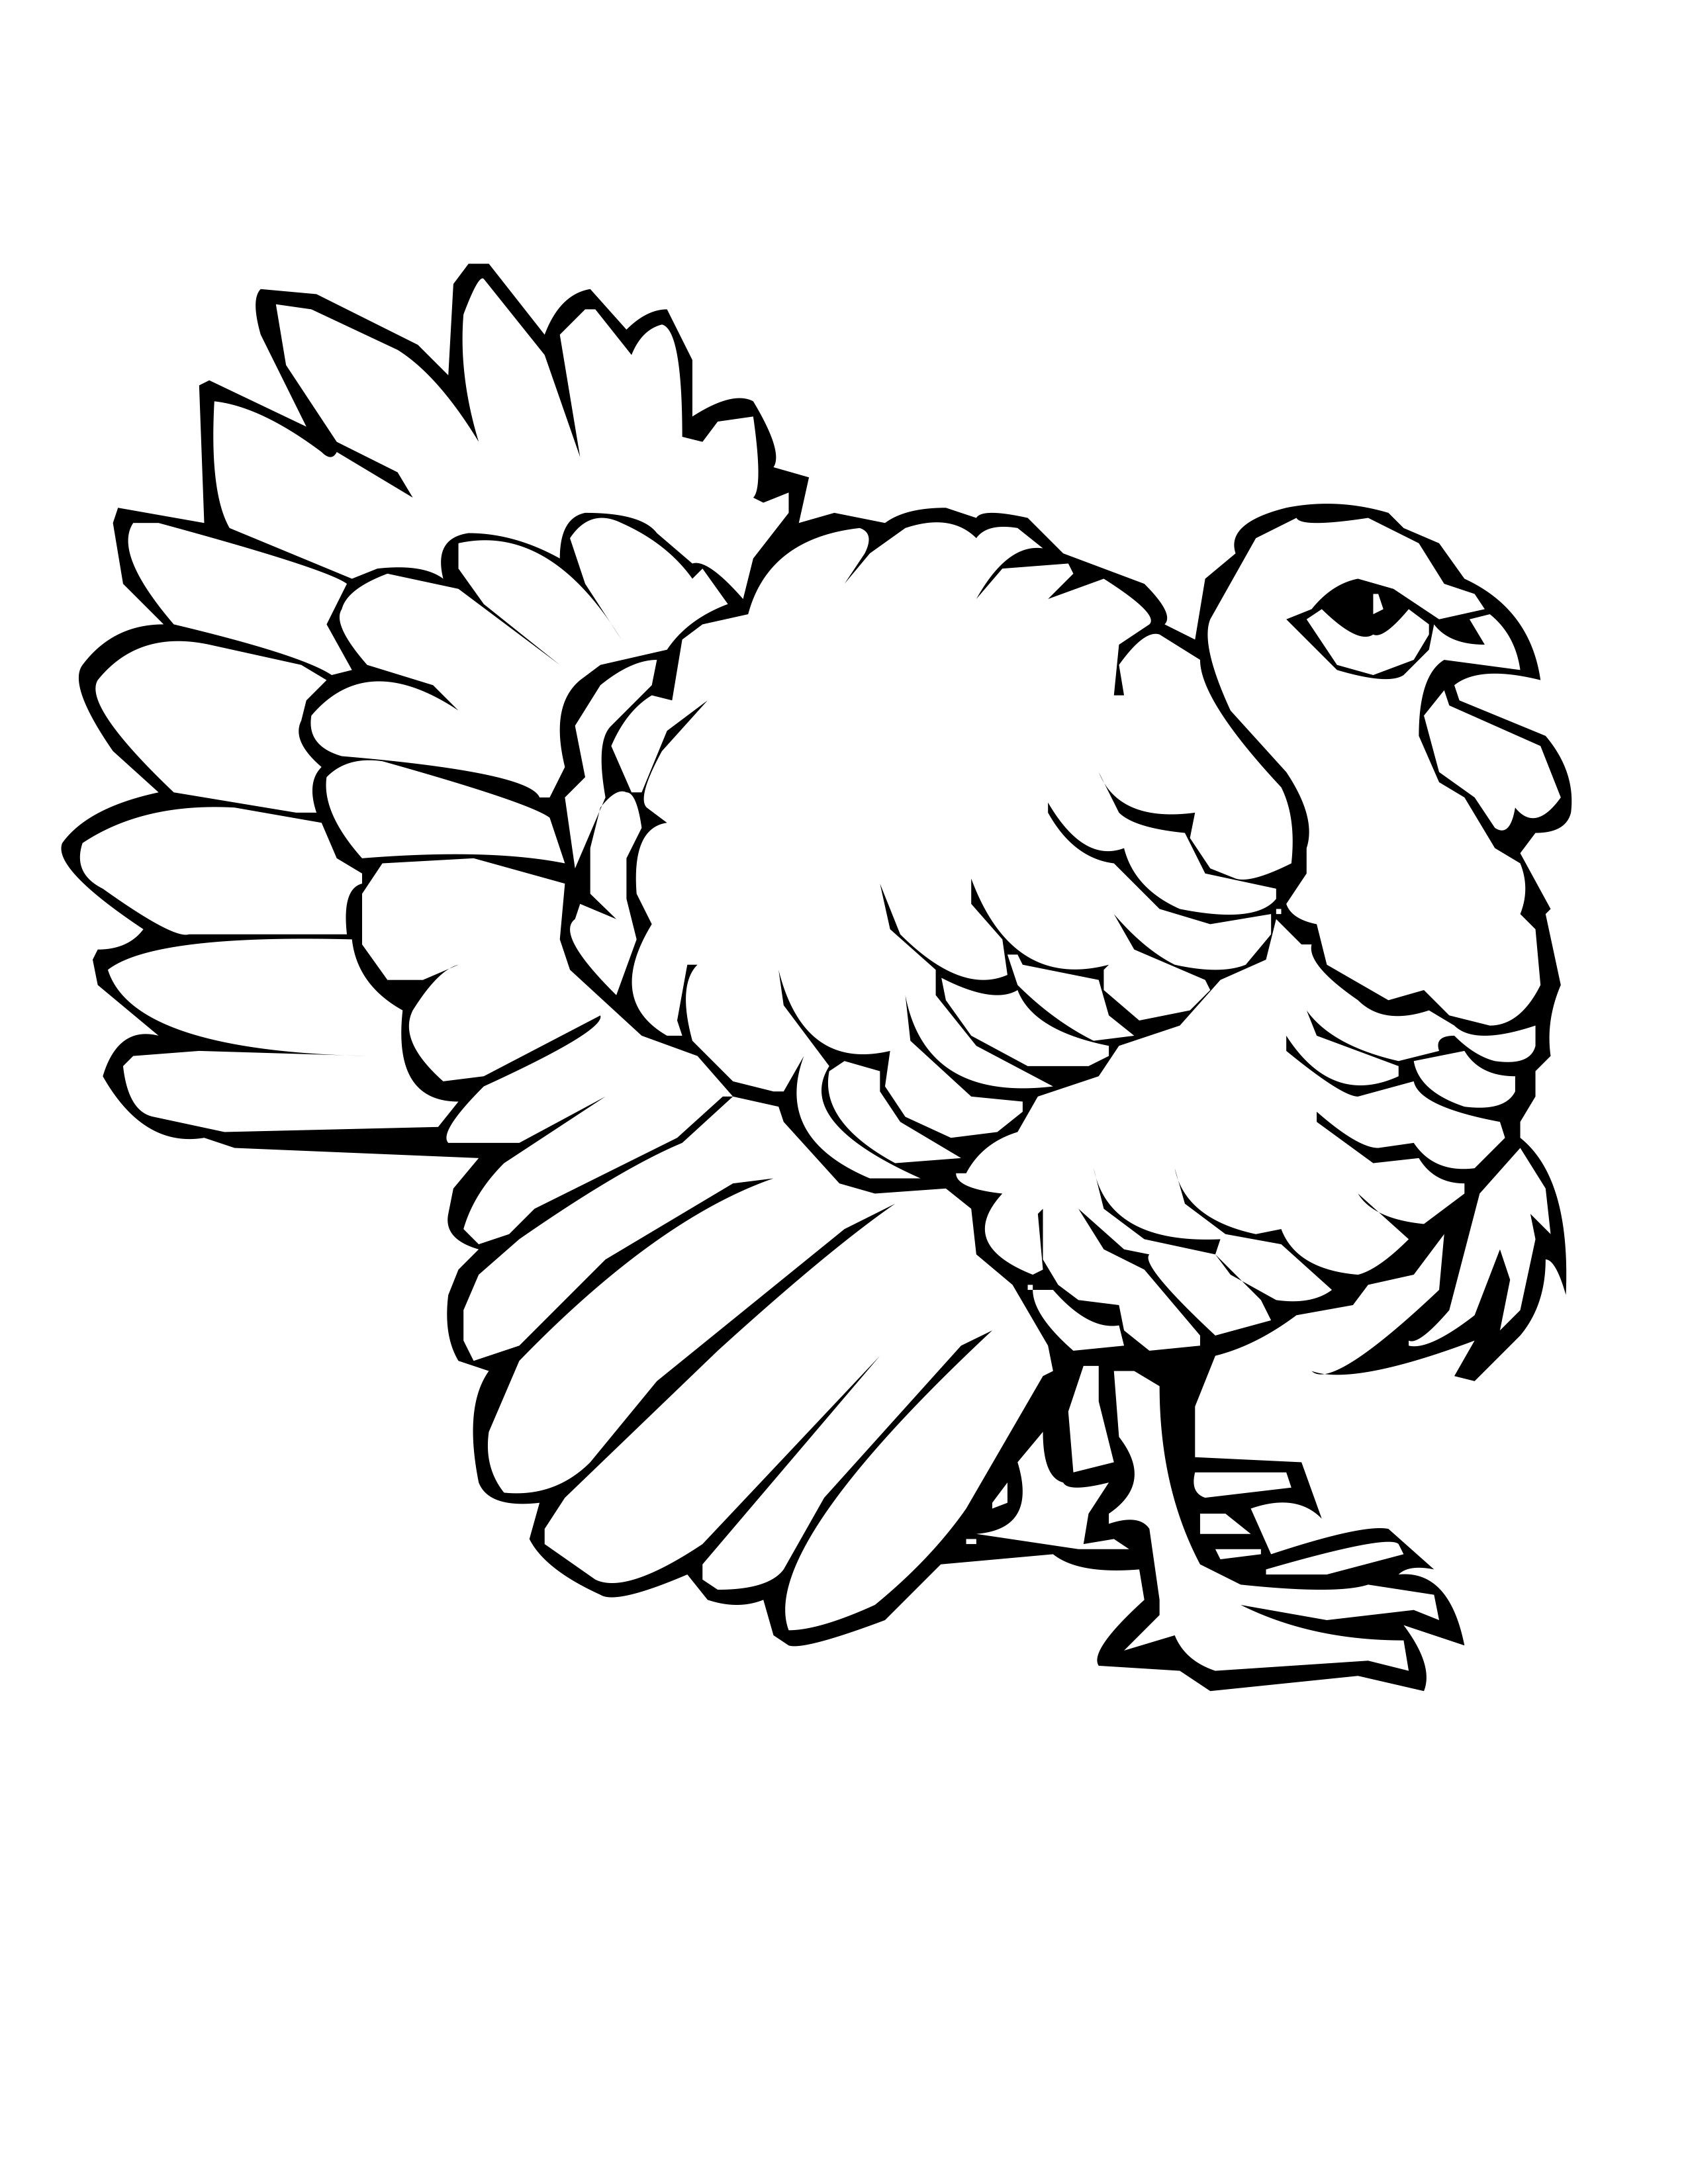 Coloring Pages Wild Turkey Google Search Turkey Coloring Pages Animal Coloring Pages Thanksgiving Coloring Pages